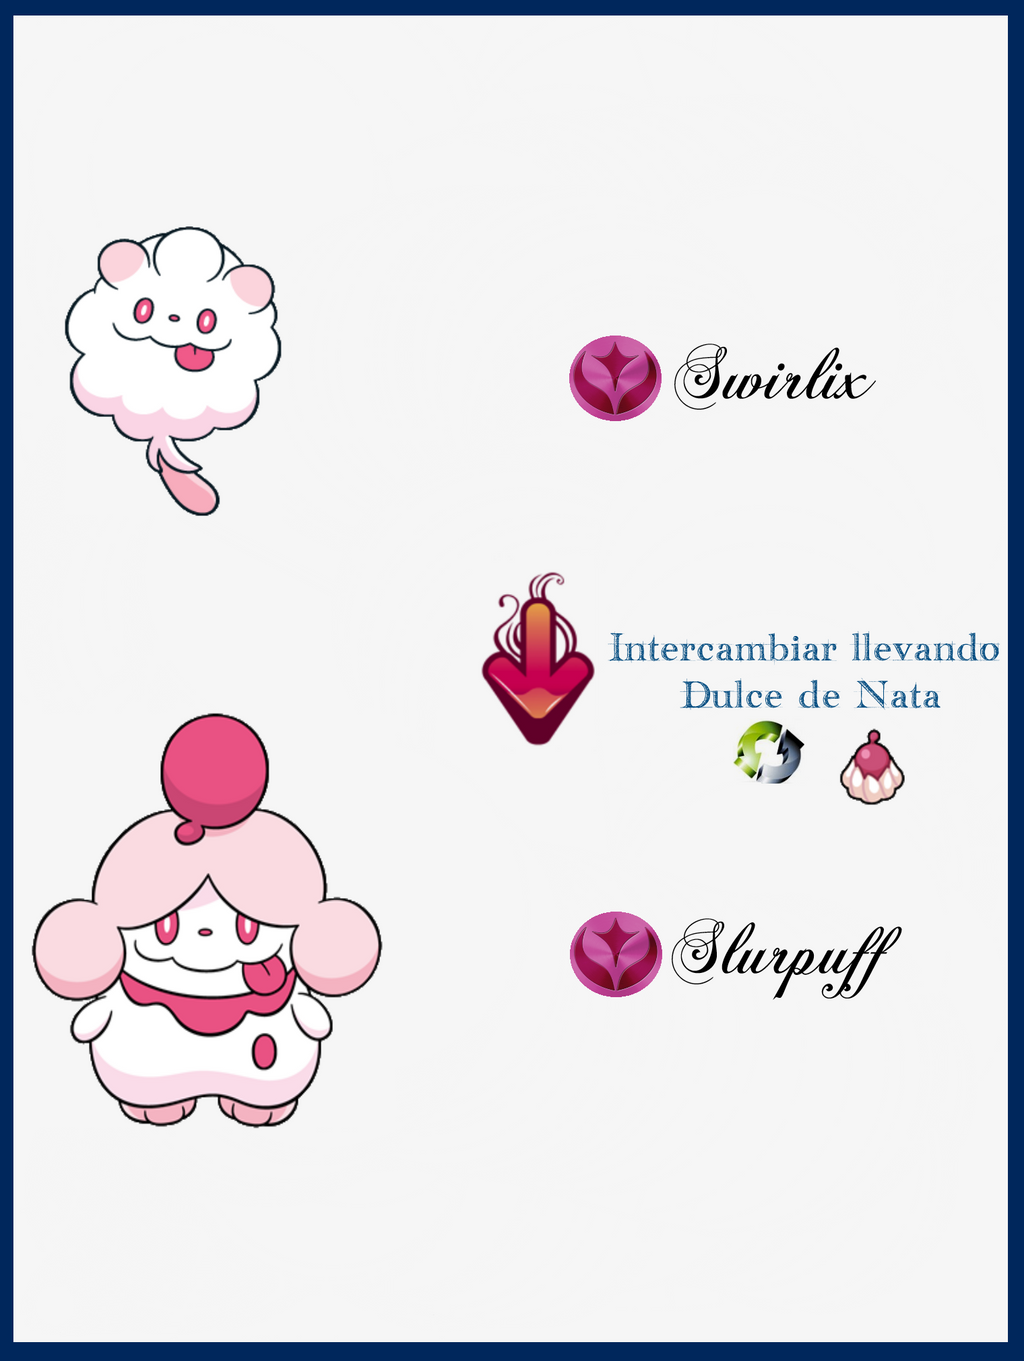 297 Swirlix Evoluciones by Maxconnery on DeviantArt